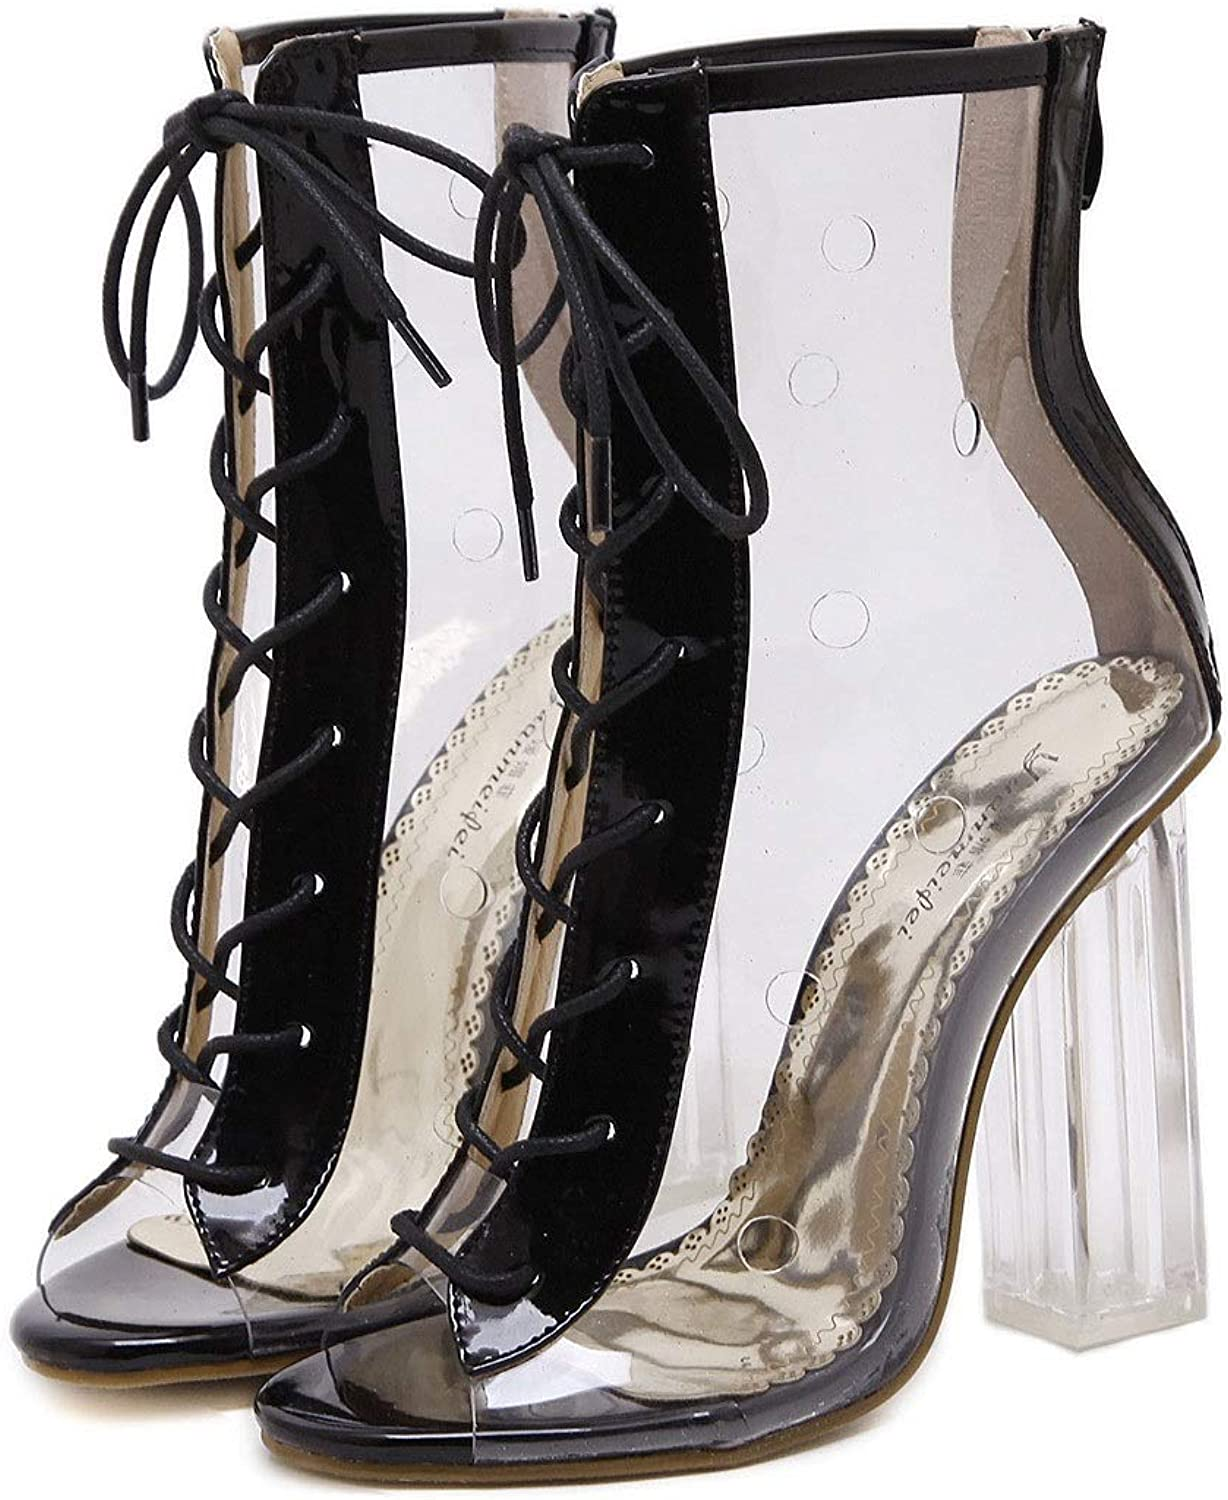 Thick Heel High Heel Transparent shoes Cross Straps Laced Crystal shoes Women's shoes Cool Boots Single shoes (color   Black, Size   5.5 US)